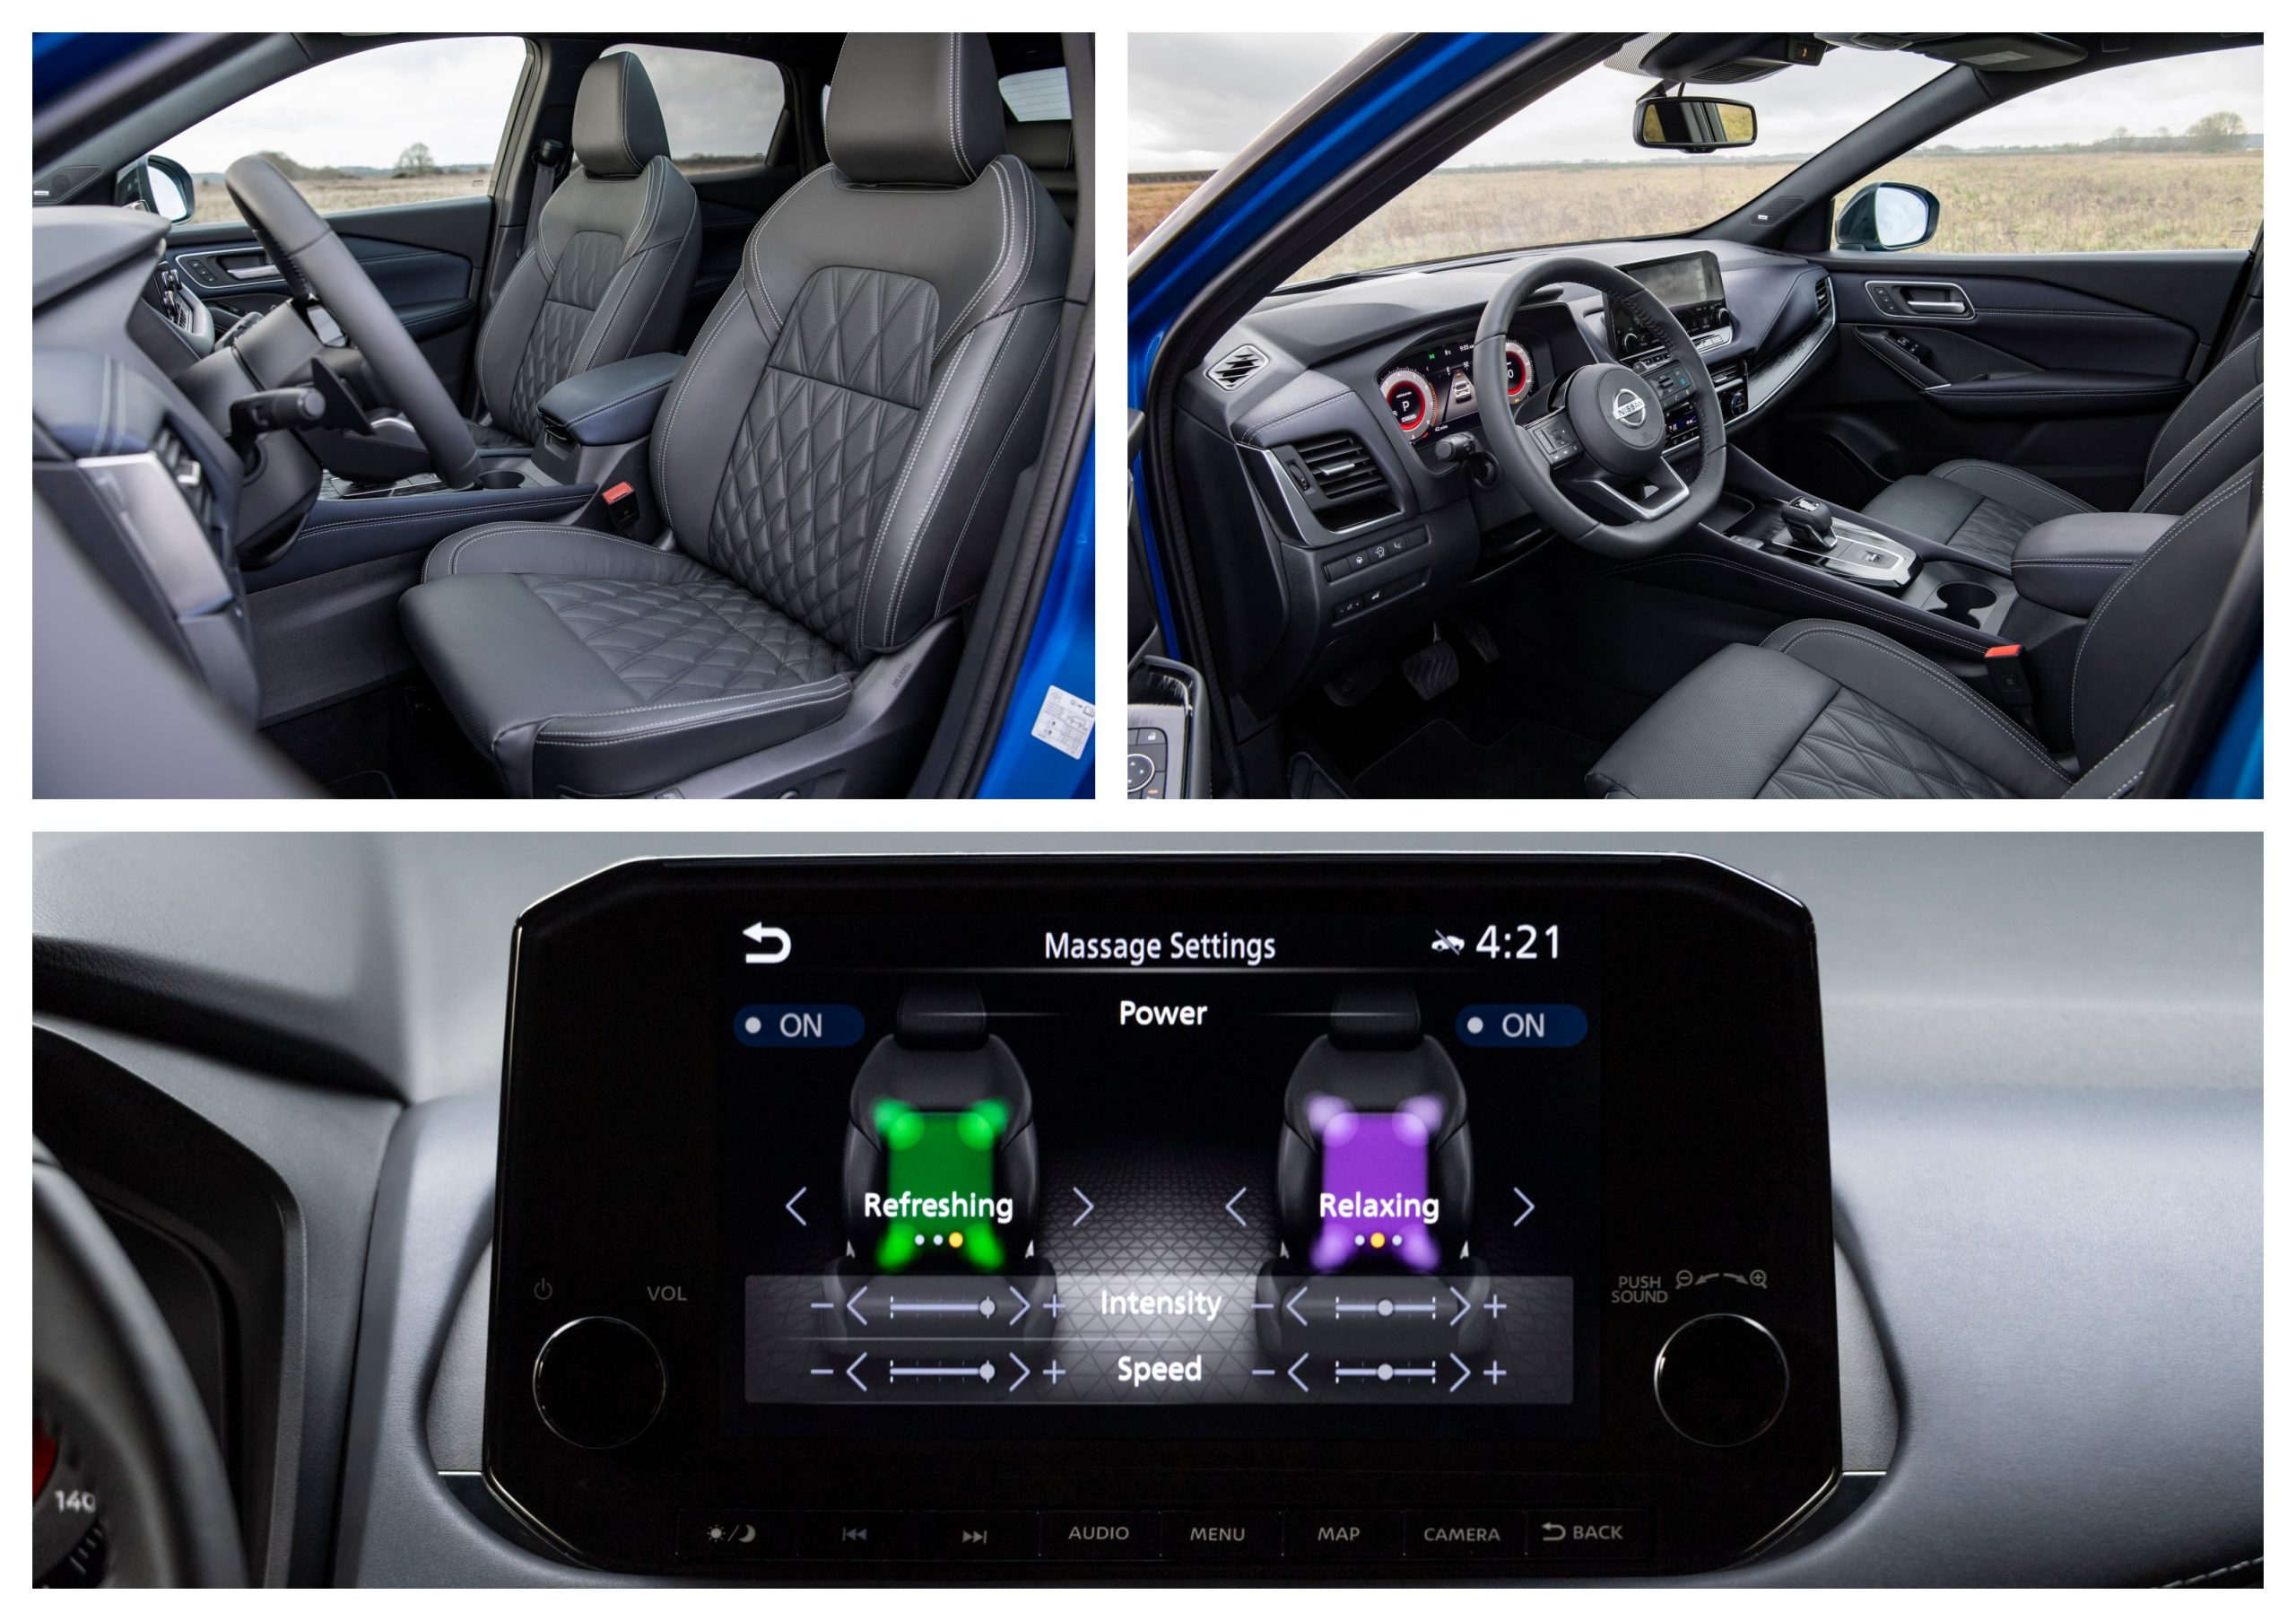 The Nissan Qashqai's interior design includes a massage function.